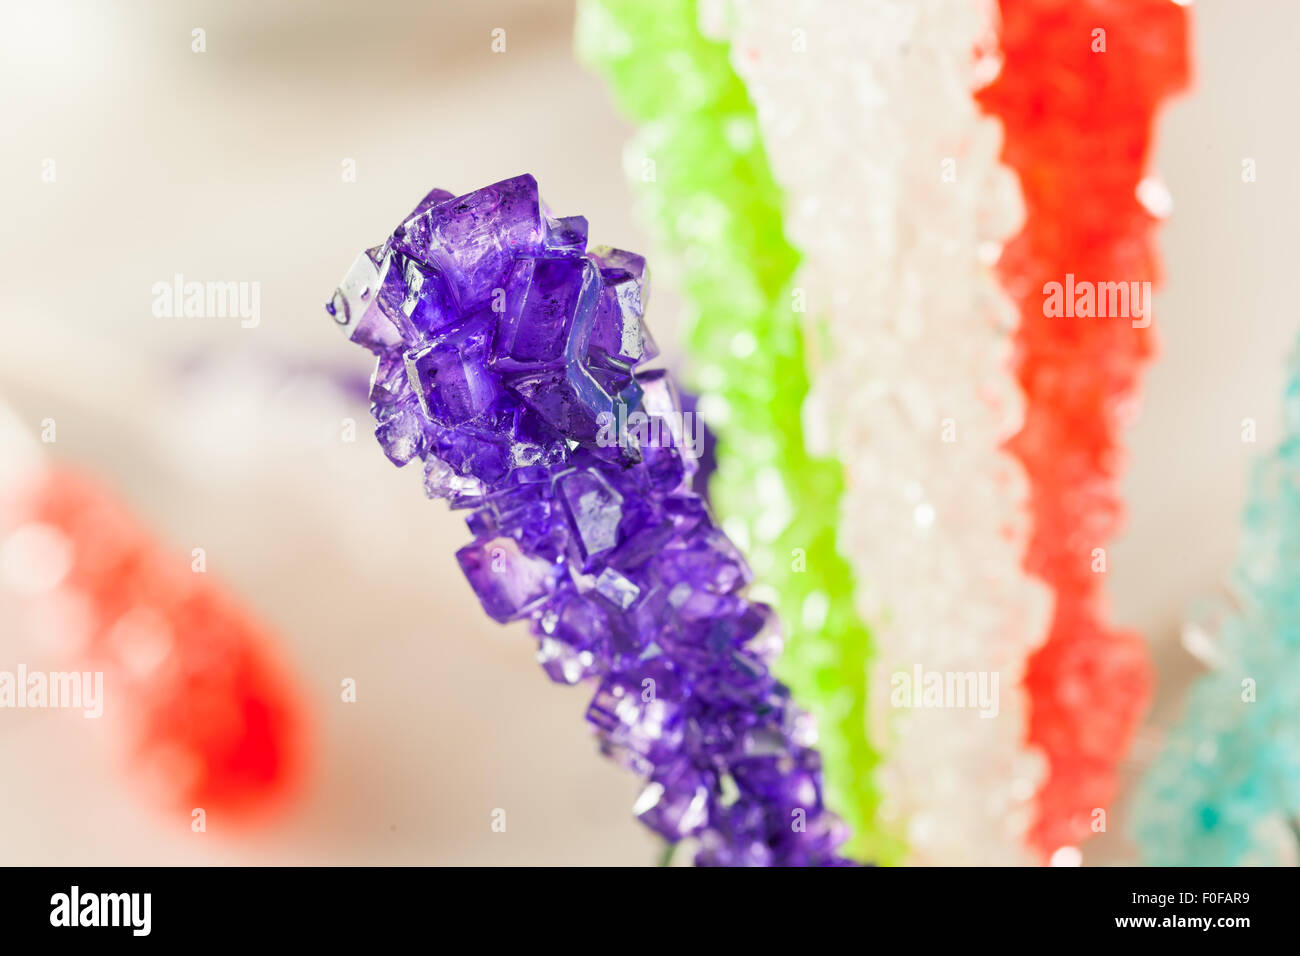 Sweet Sugary Multi Colored Rock Candy Ready to Eat - Stock Image